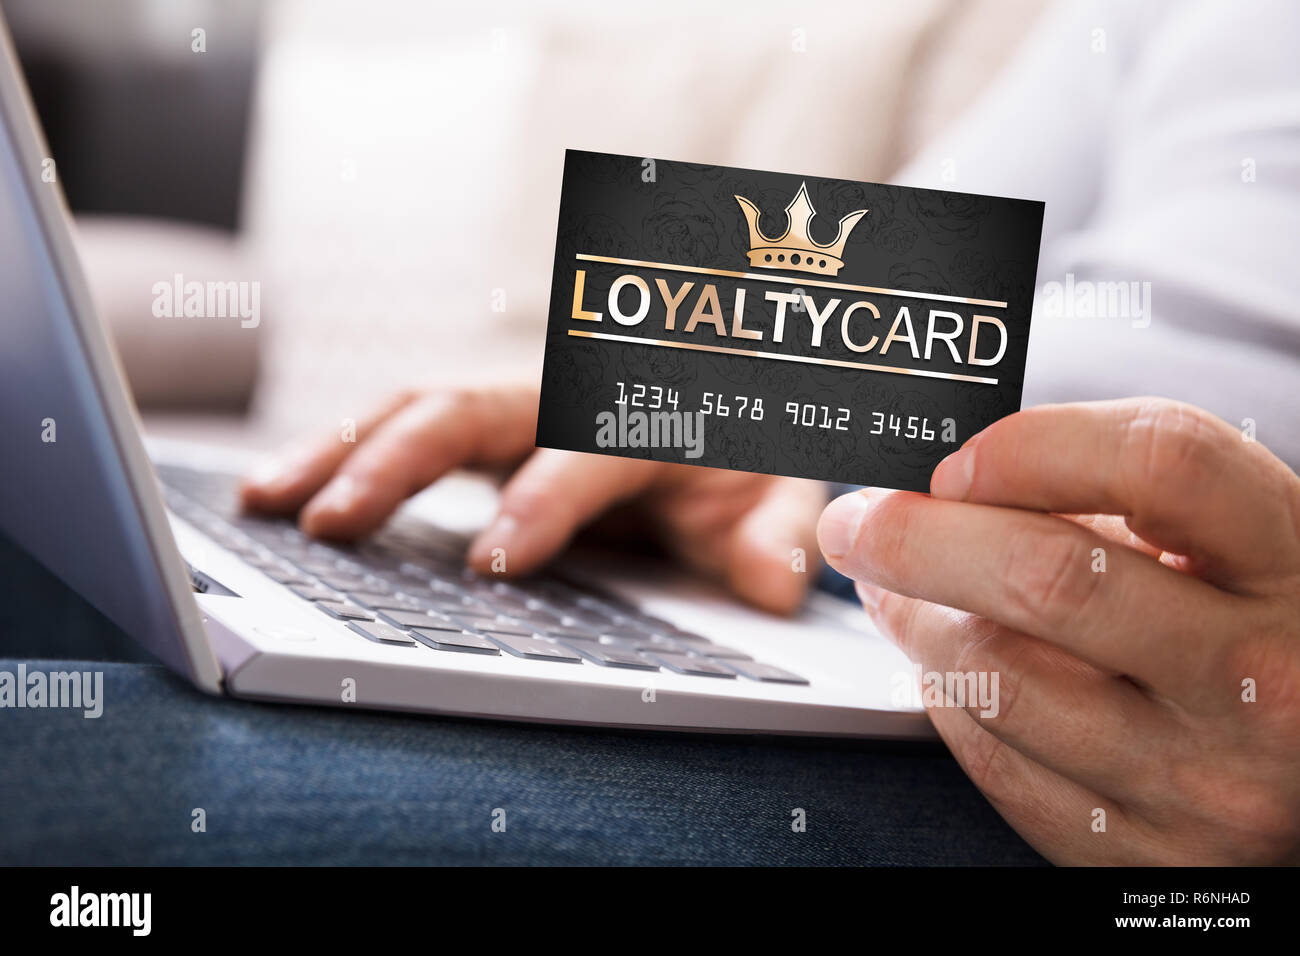 Person With Loyalty Card Using Laptop - Stock Image